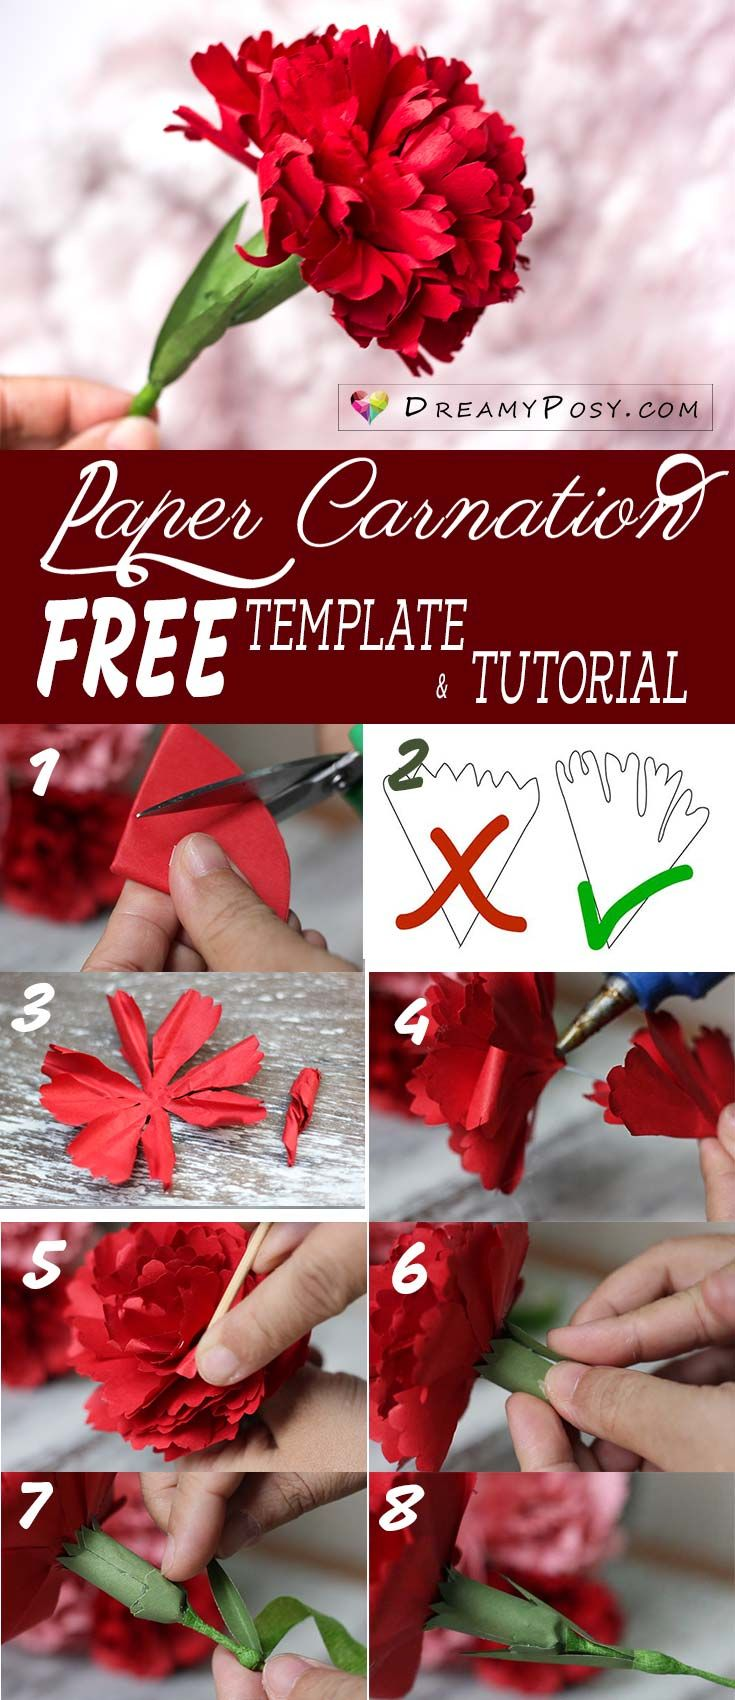 How To Make Carnation Paper Flower Free Template Easy Pinterest